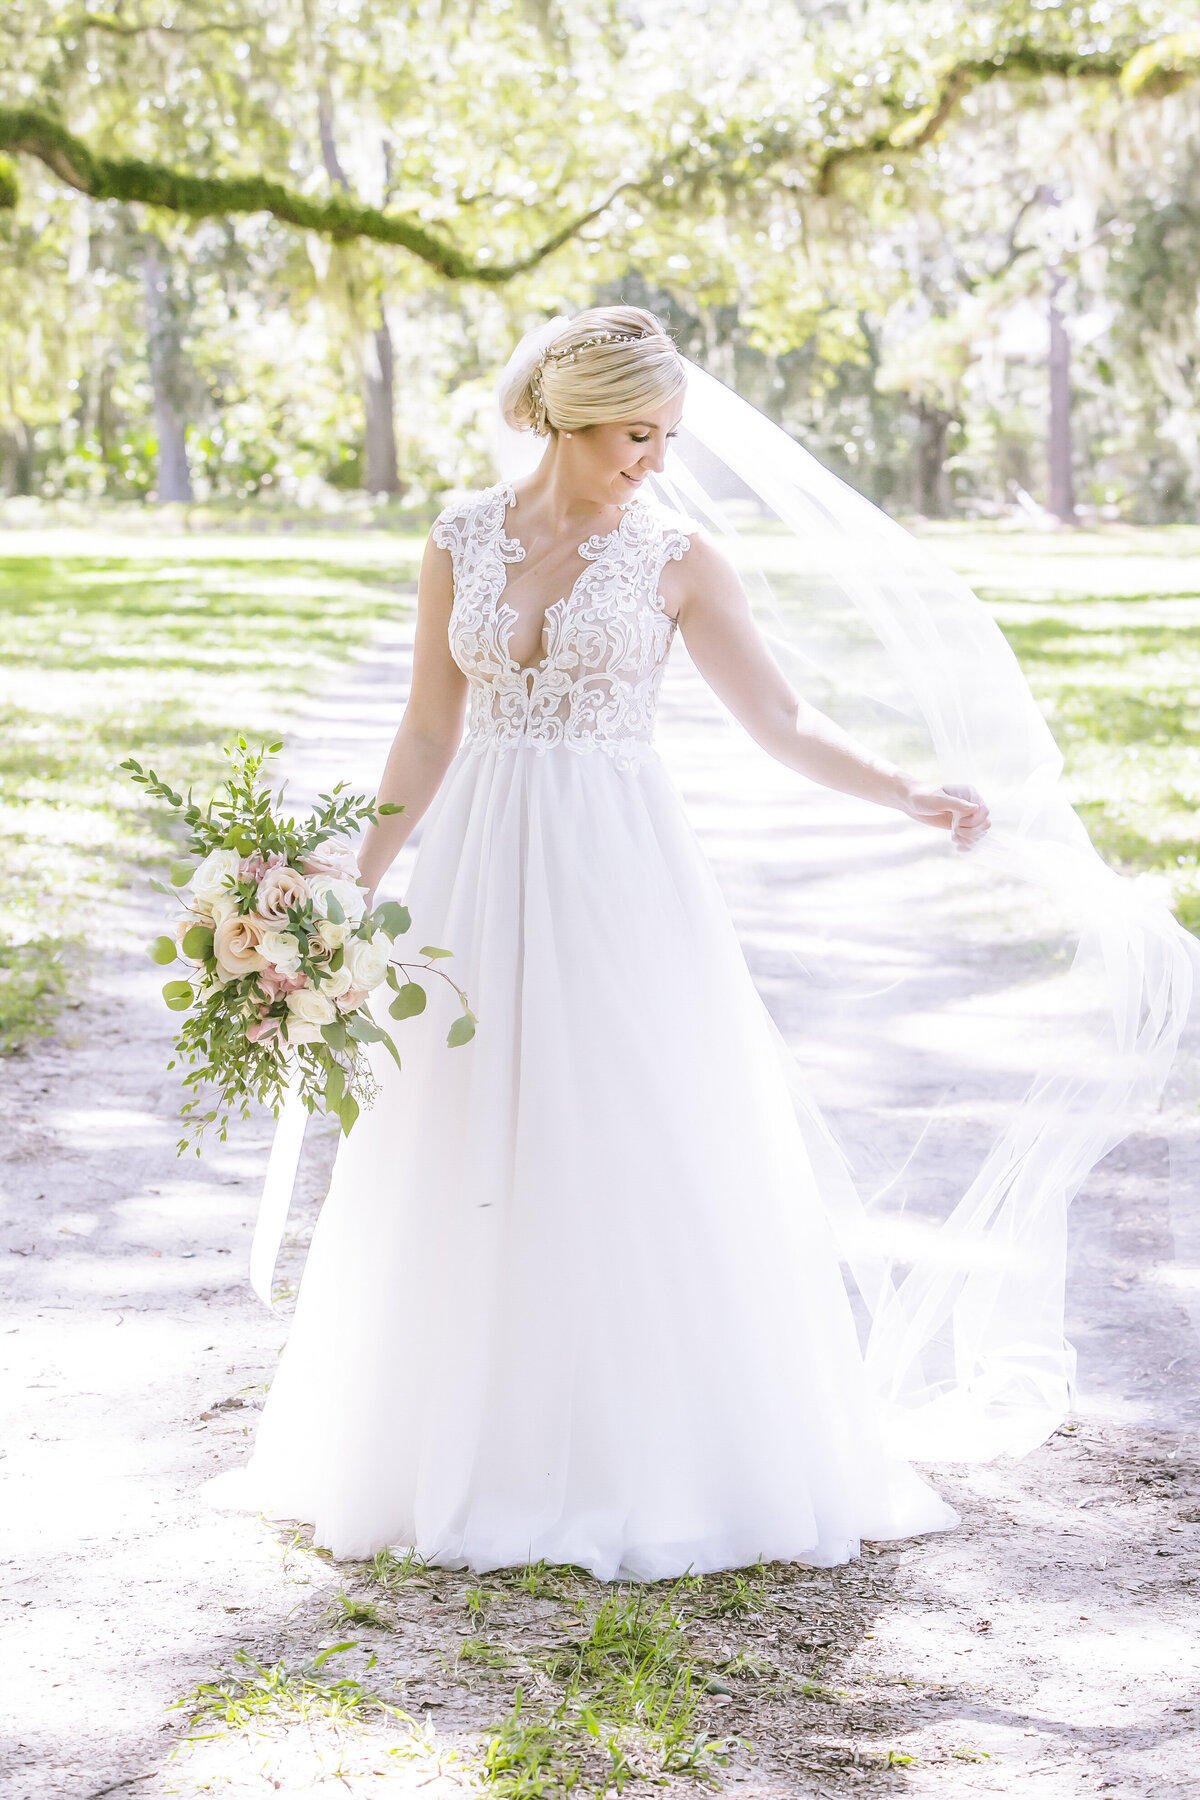 Lisa-Staff-Photographer-Hilton Head-photographer-1104